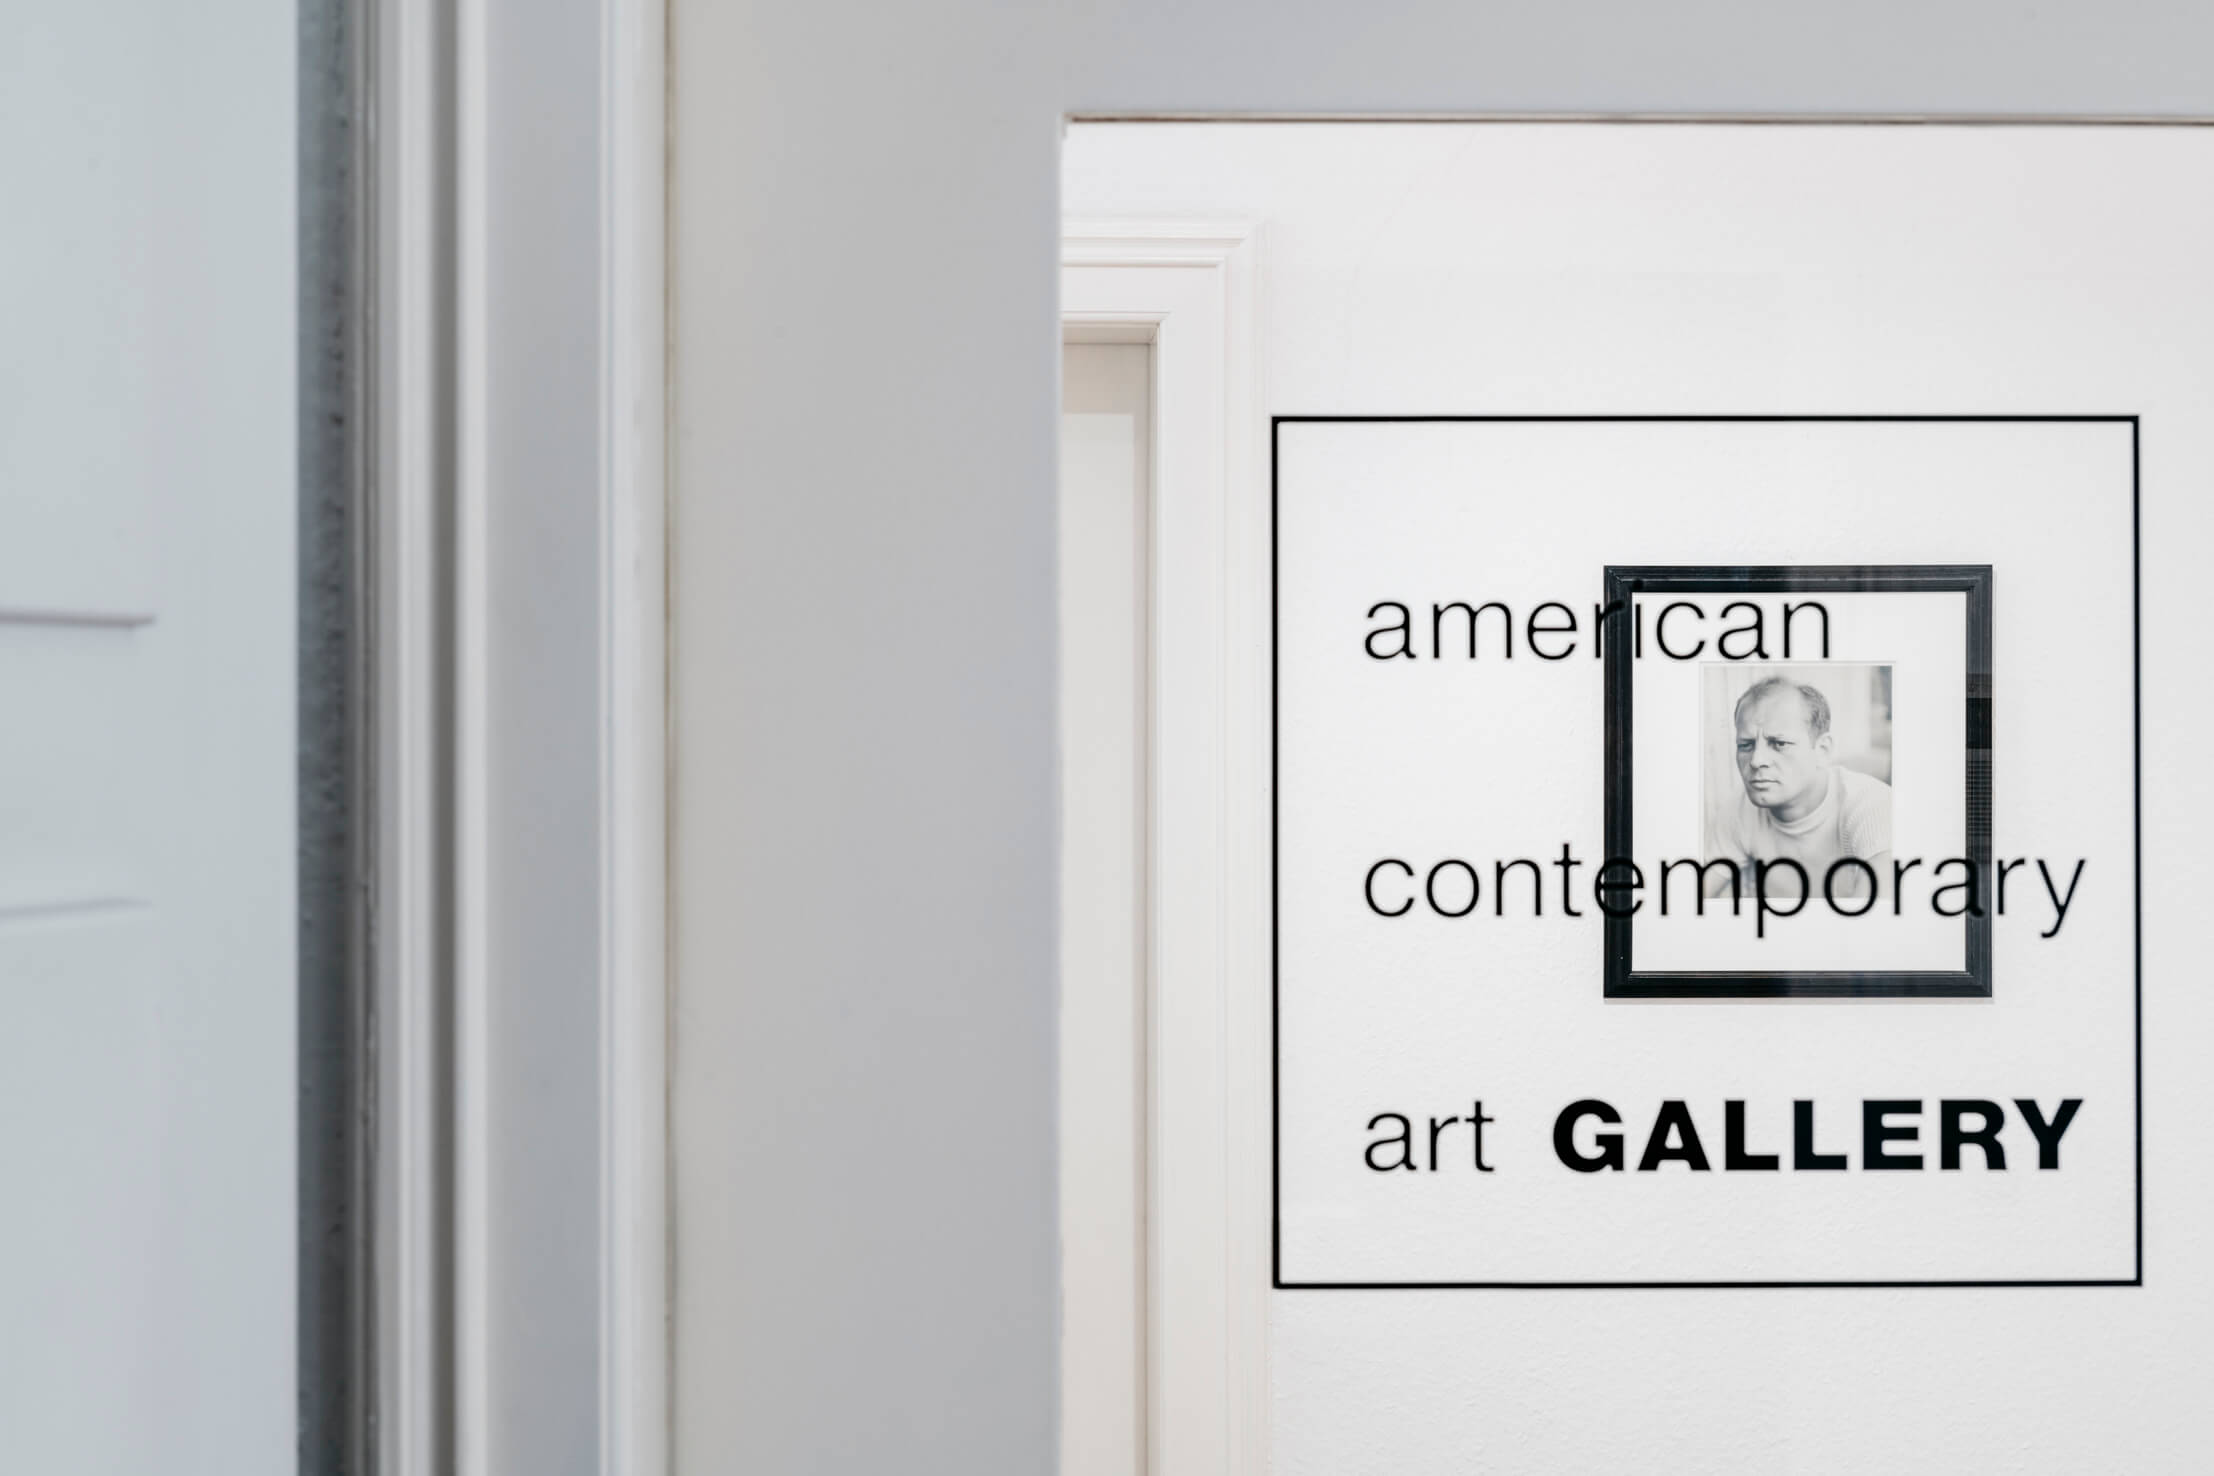 american contemporary art GALLERY